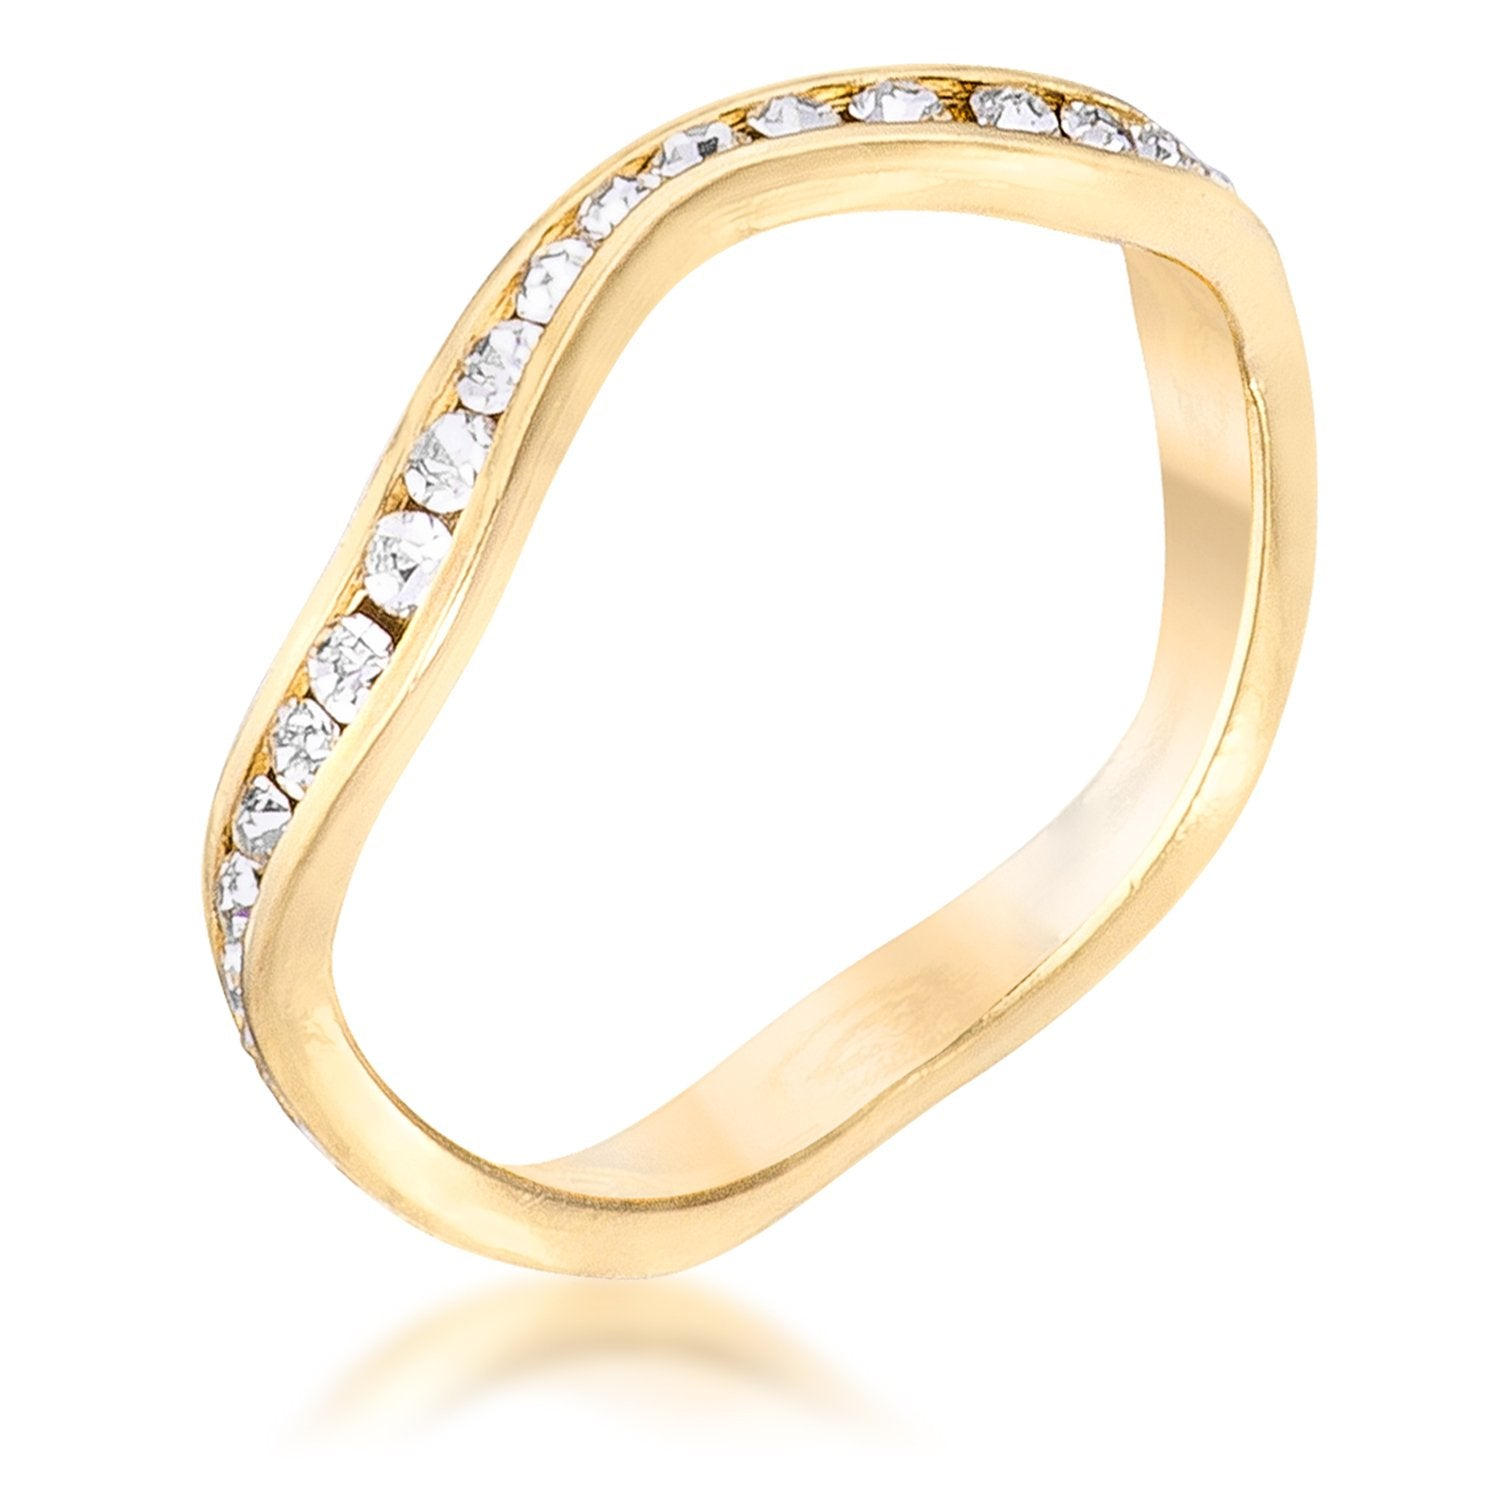 18k Gold Plated Petite Wavy Channel Set Crystal Stackable Eternity Ring - Opulent Lifestyle